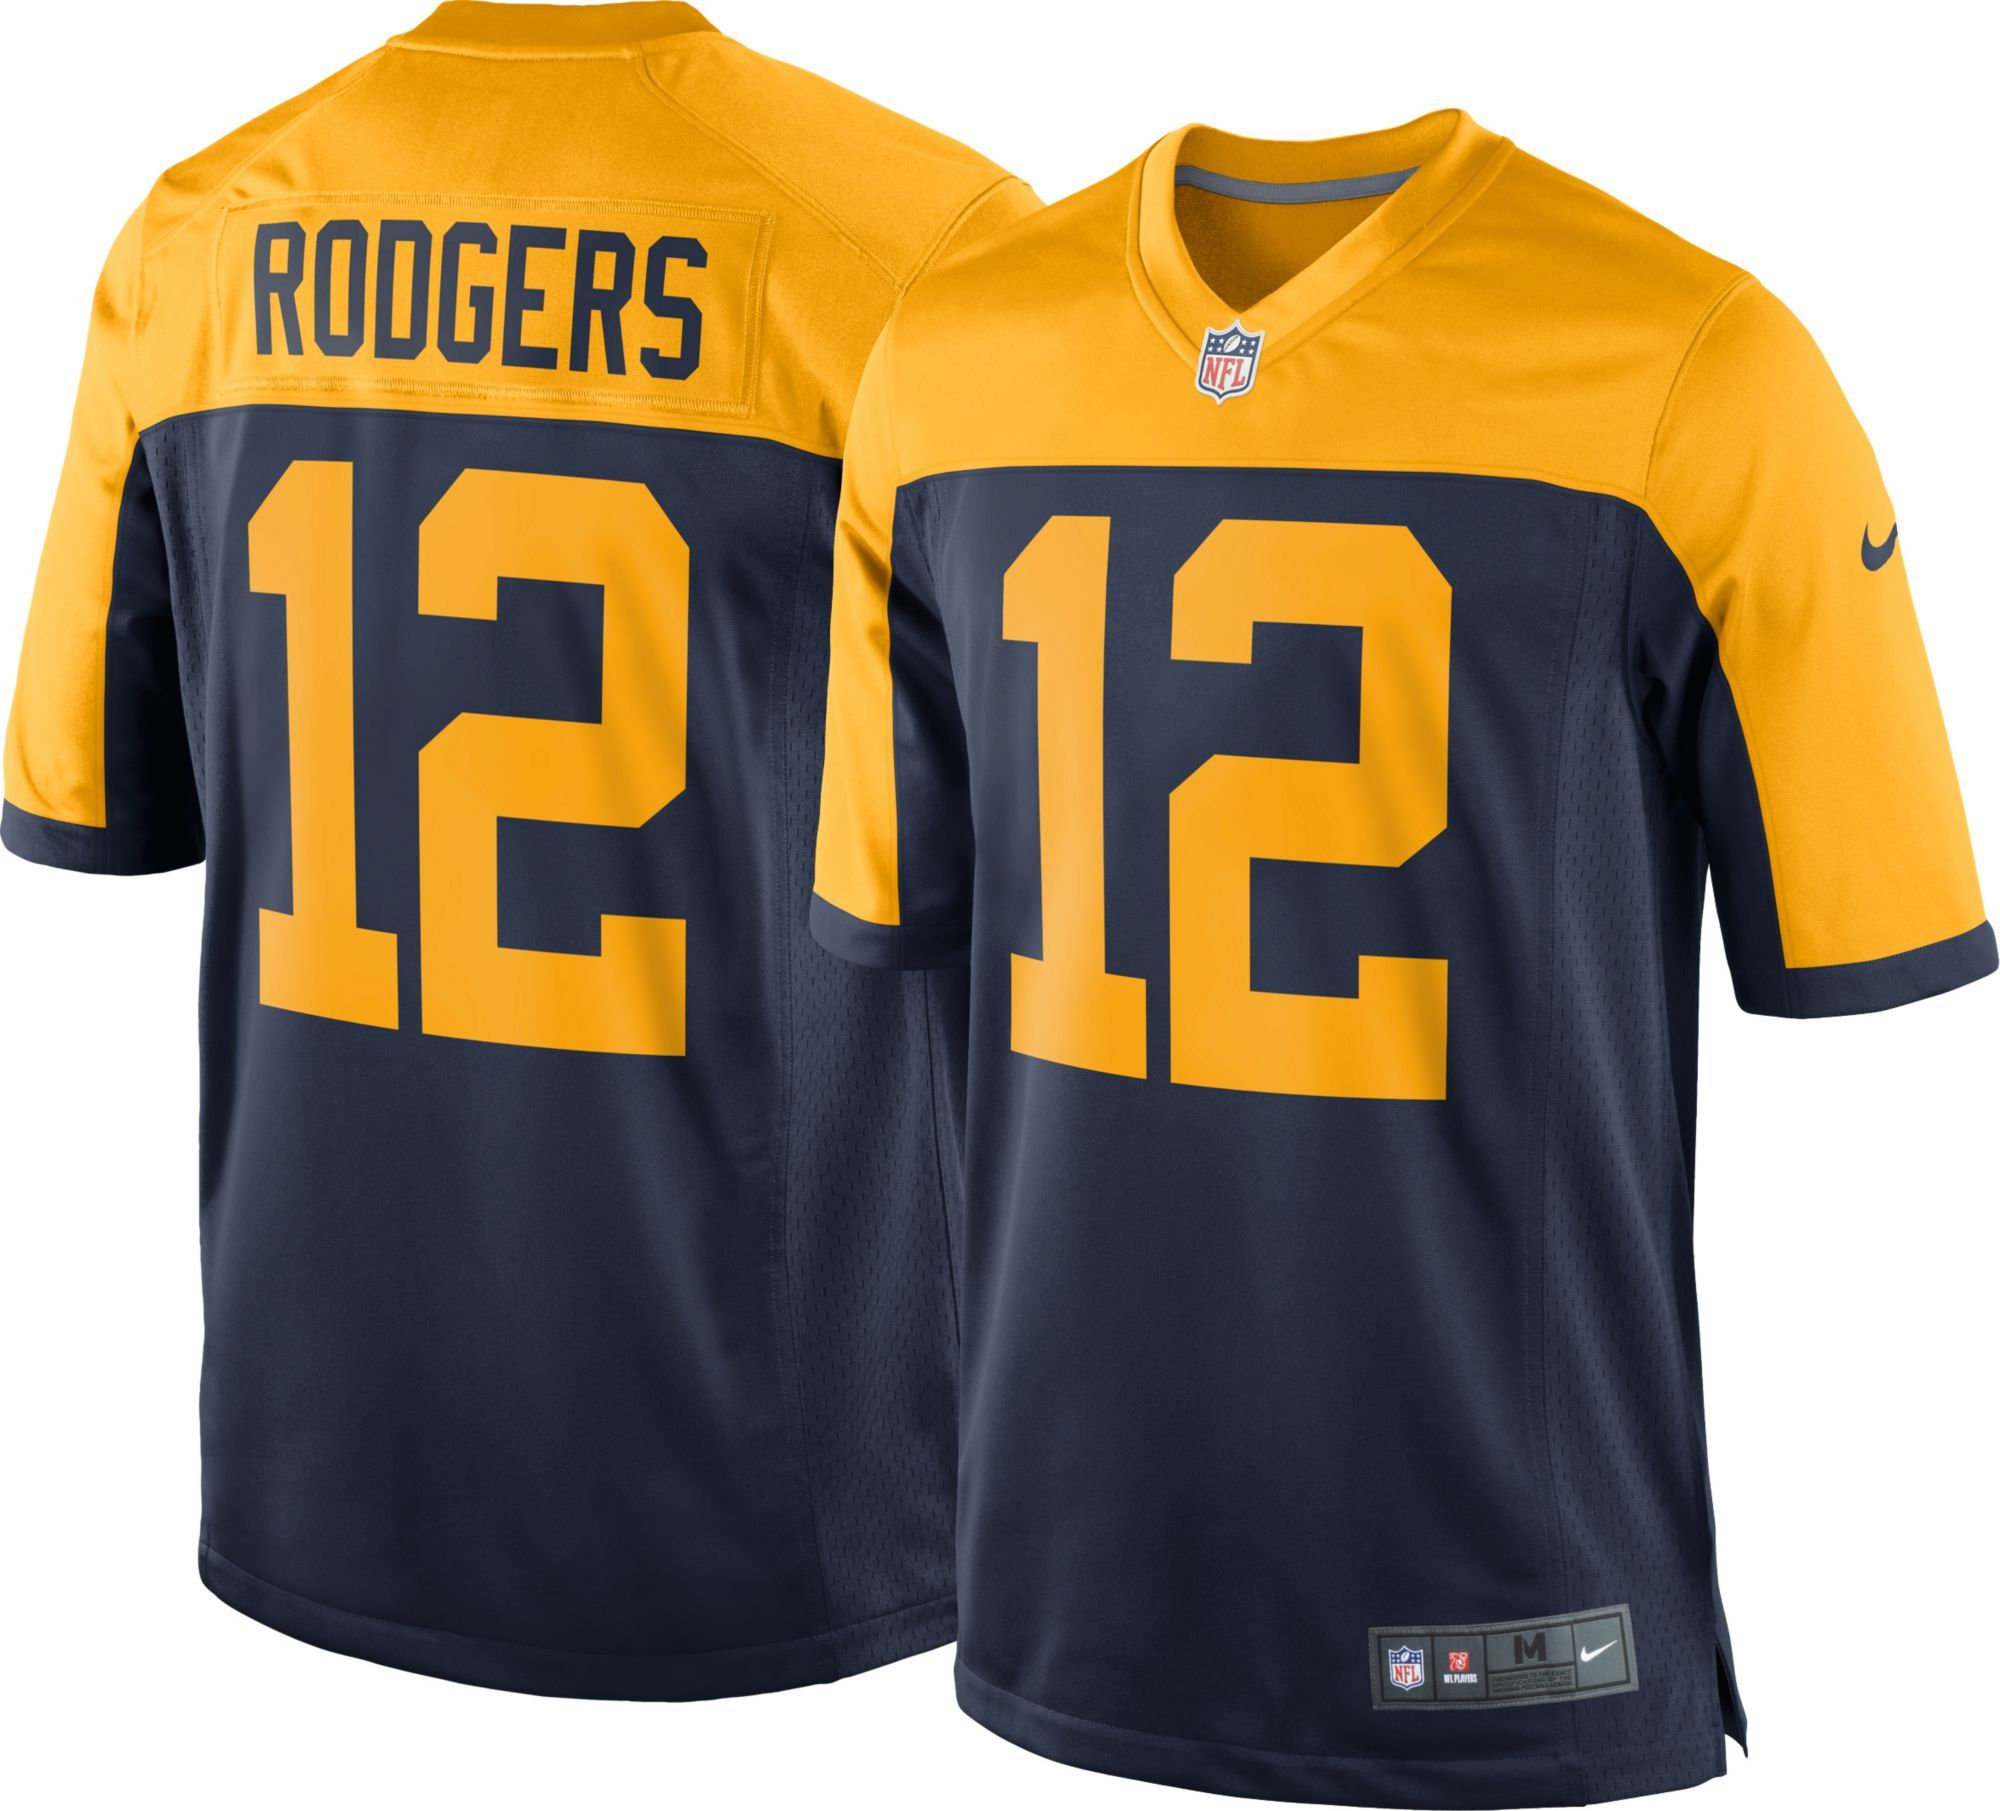 Nike Men S Alternate Game Jersey Green Bay Aaron Rodgers 12 Size Large Team Green Bay Packers Jerseys Nfl Jerseys Green Bay Packers Aaron Rodgers